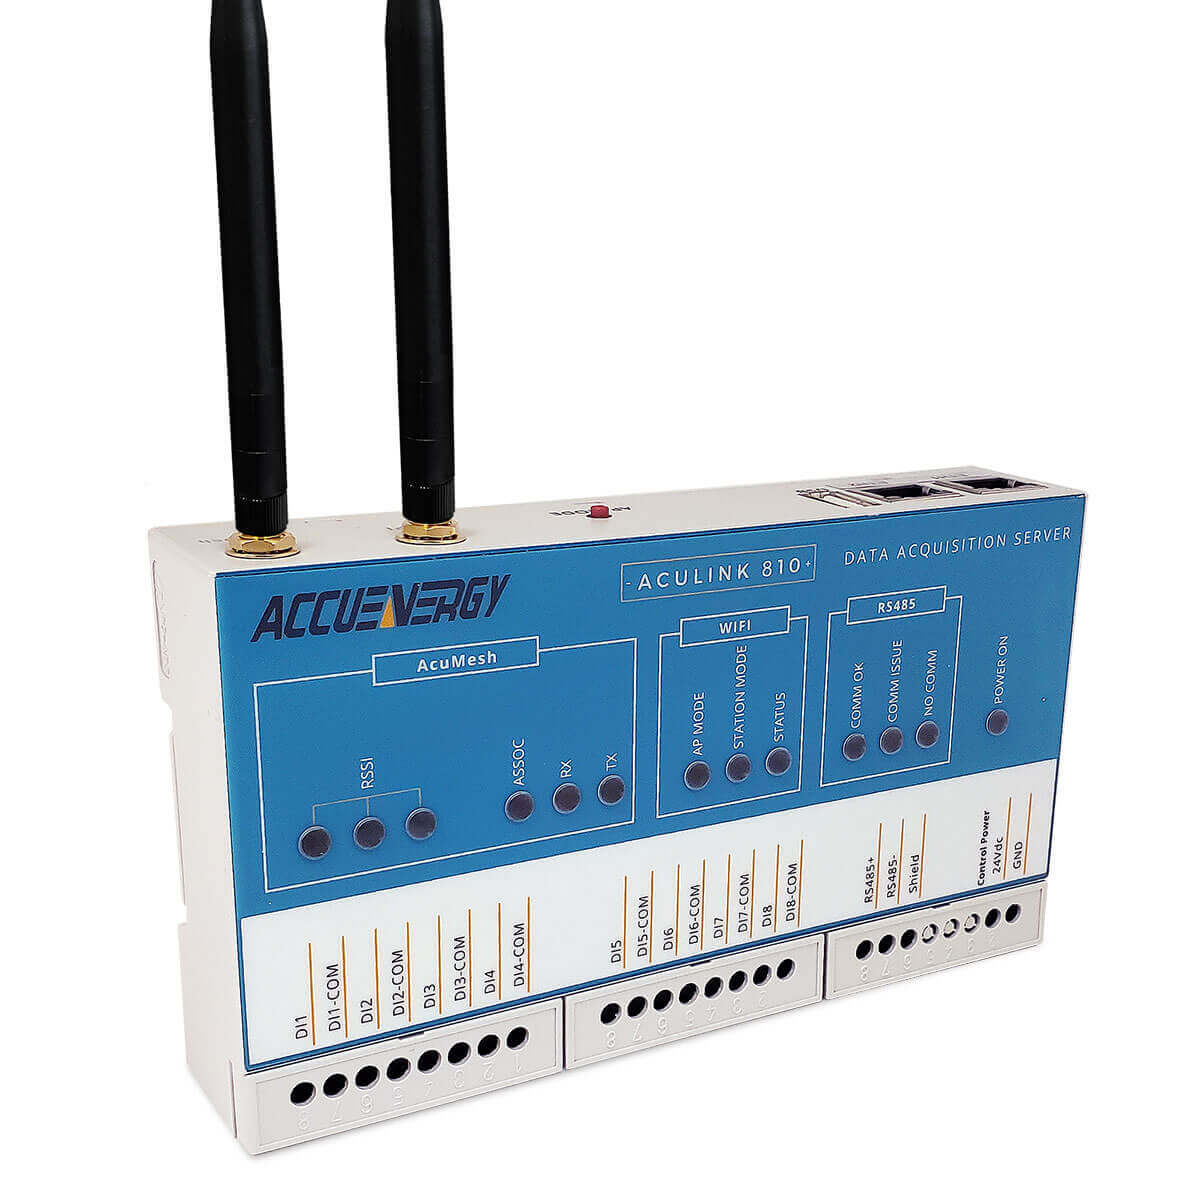 Data Acquisition Server - AcuLink 810